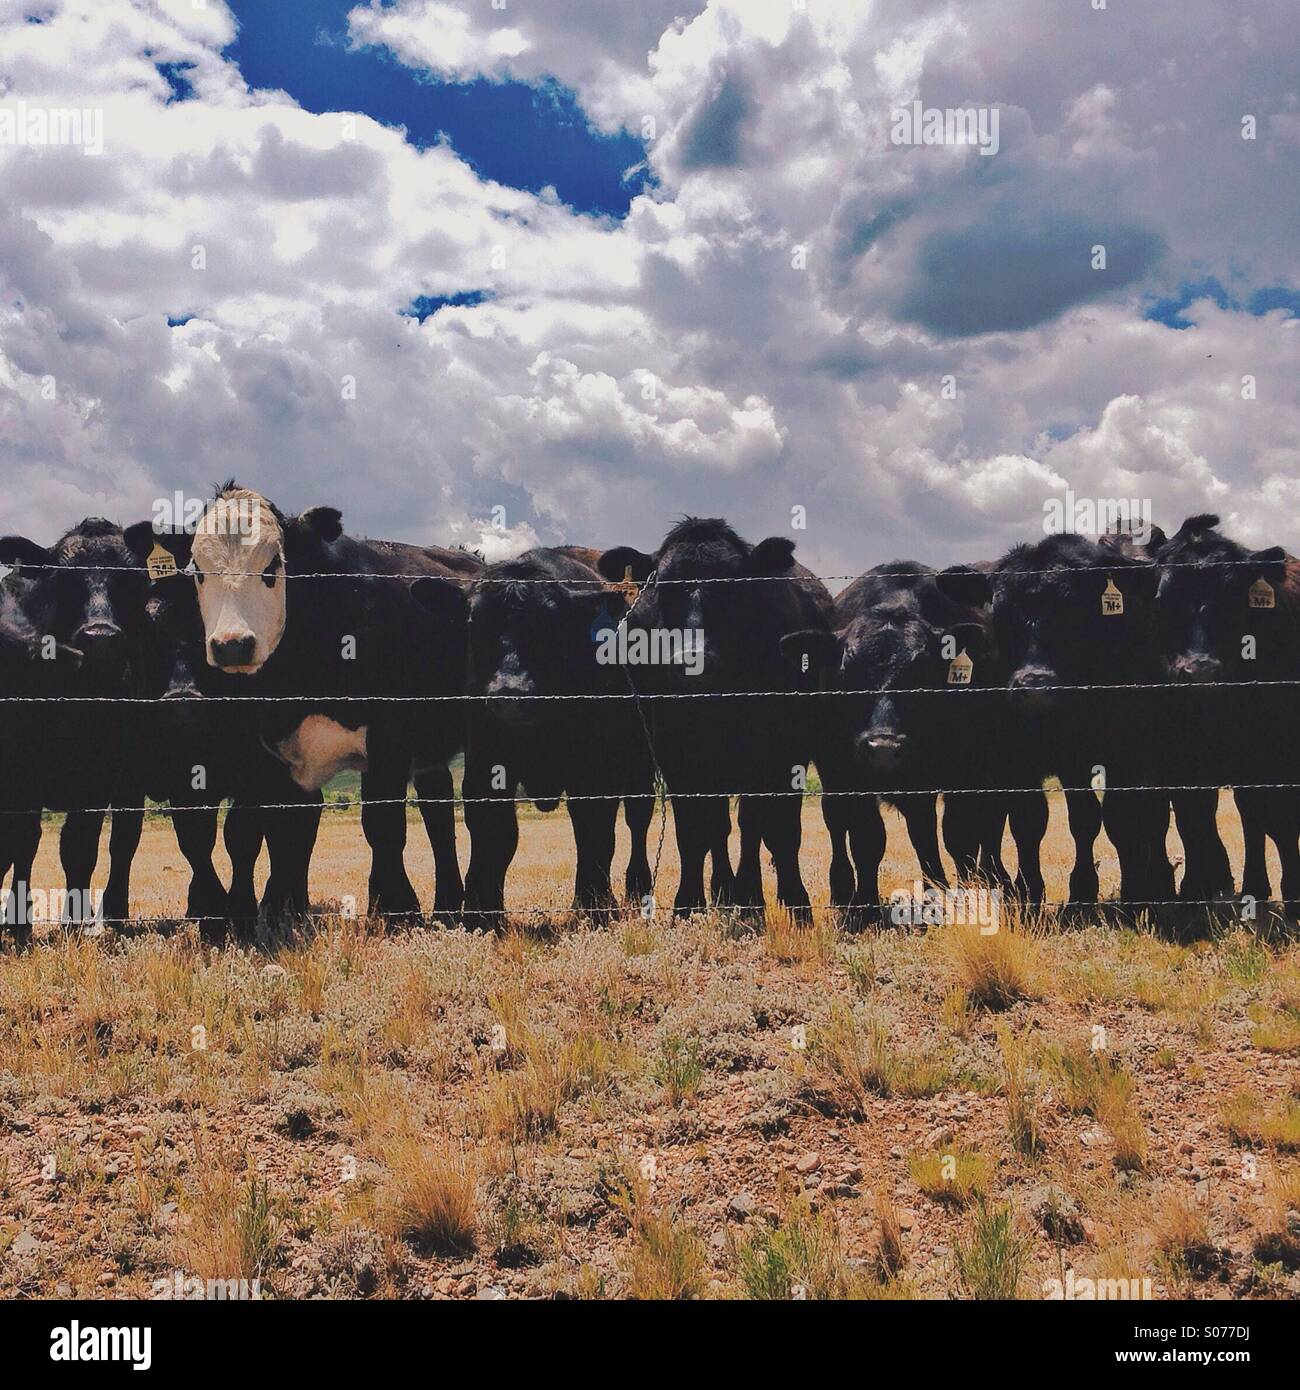 Row of Cows - Stock Image